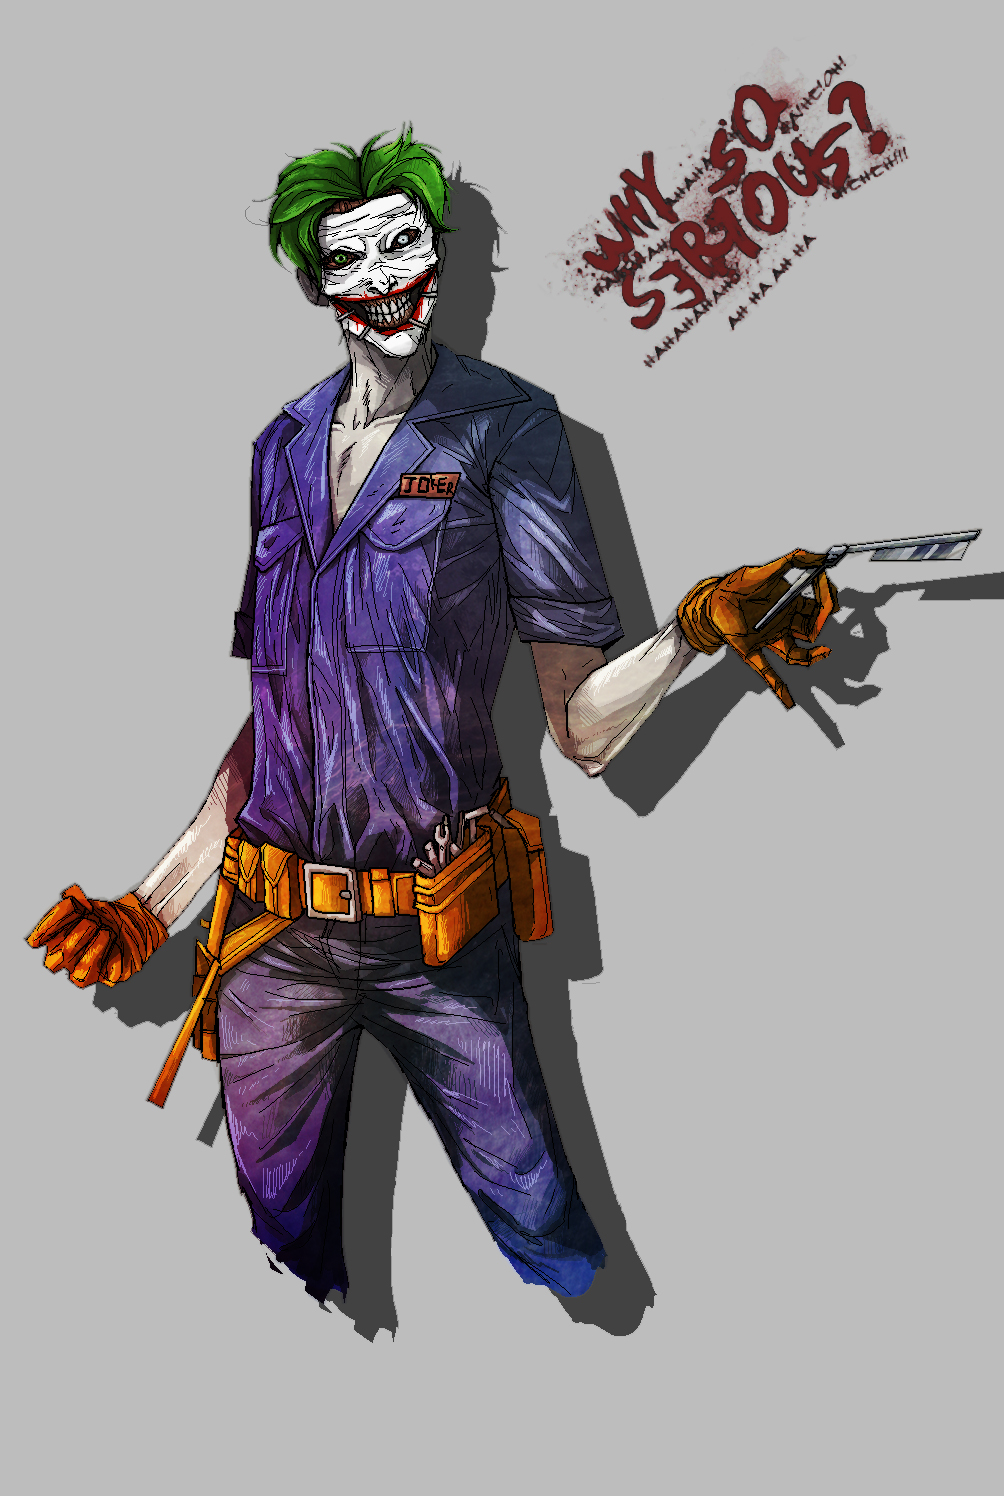 Joker New52 by flaiil on DeviantArtNew 52 Joker Wallpaper